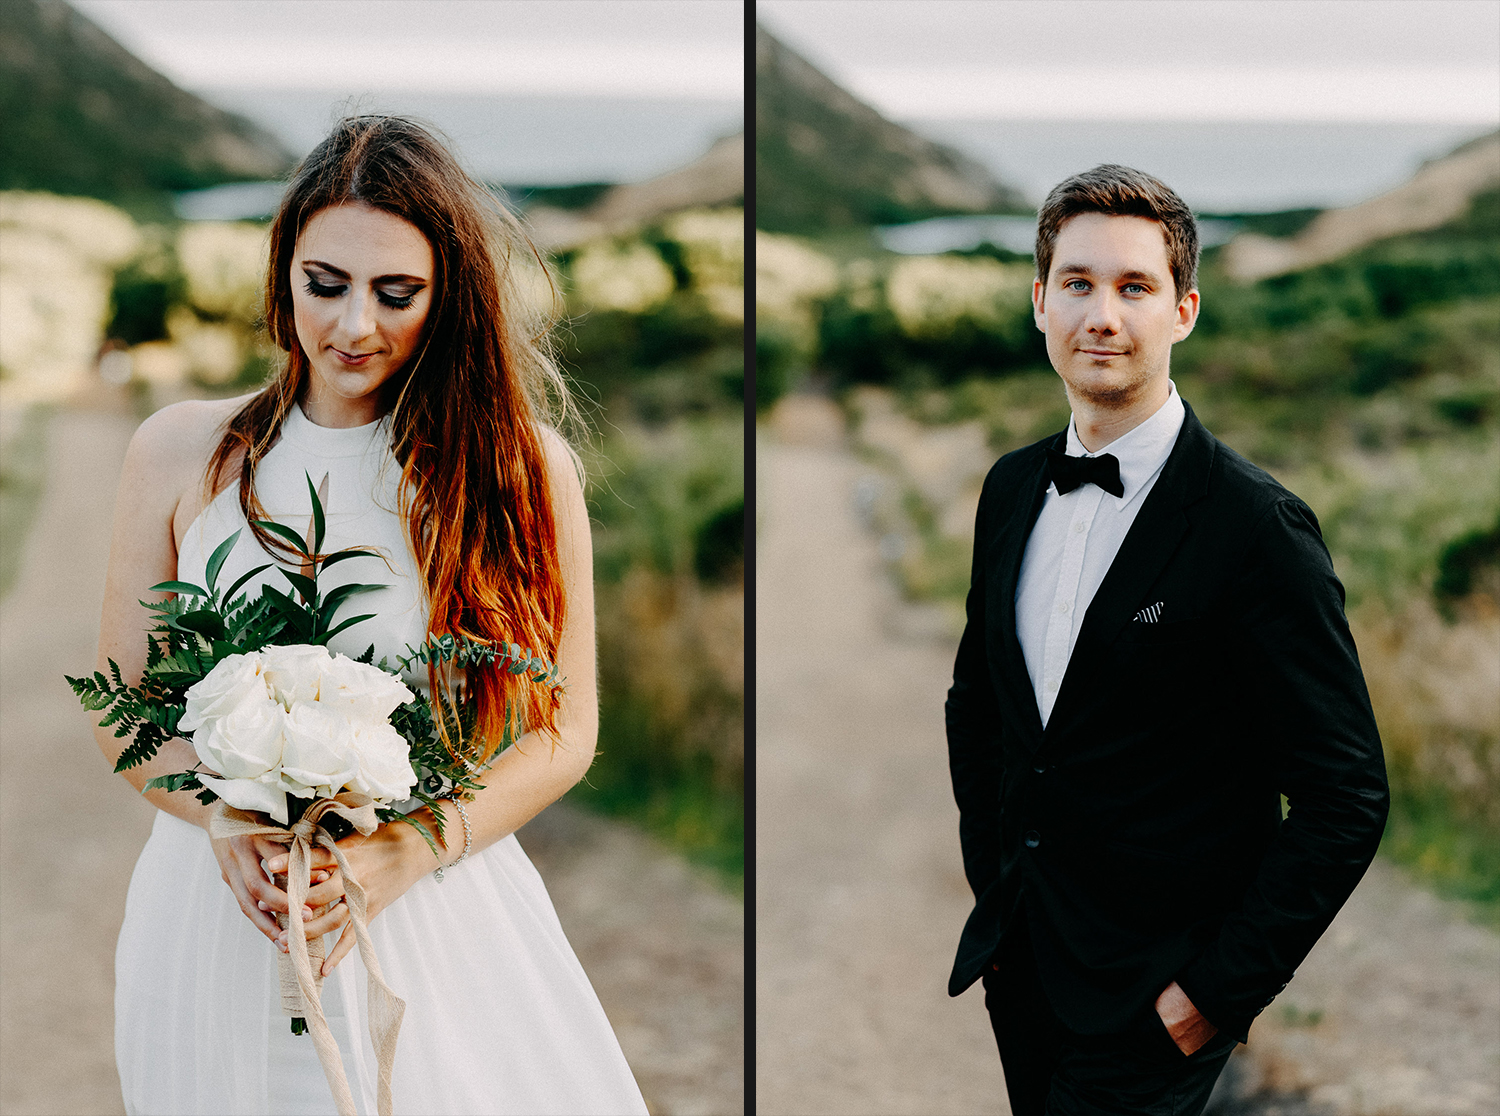 Image of bride and groom portraits